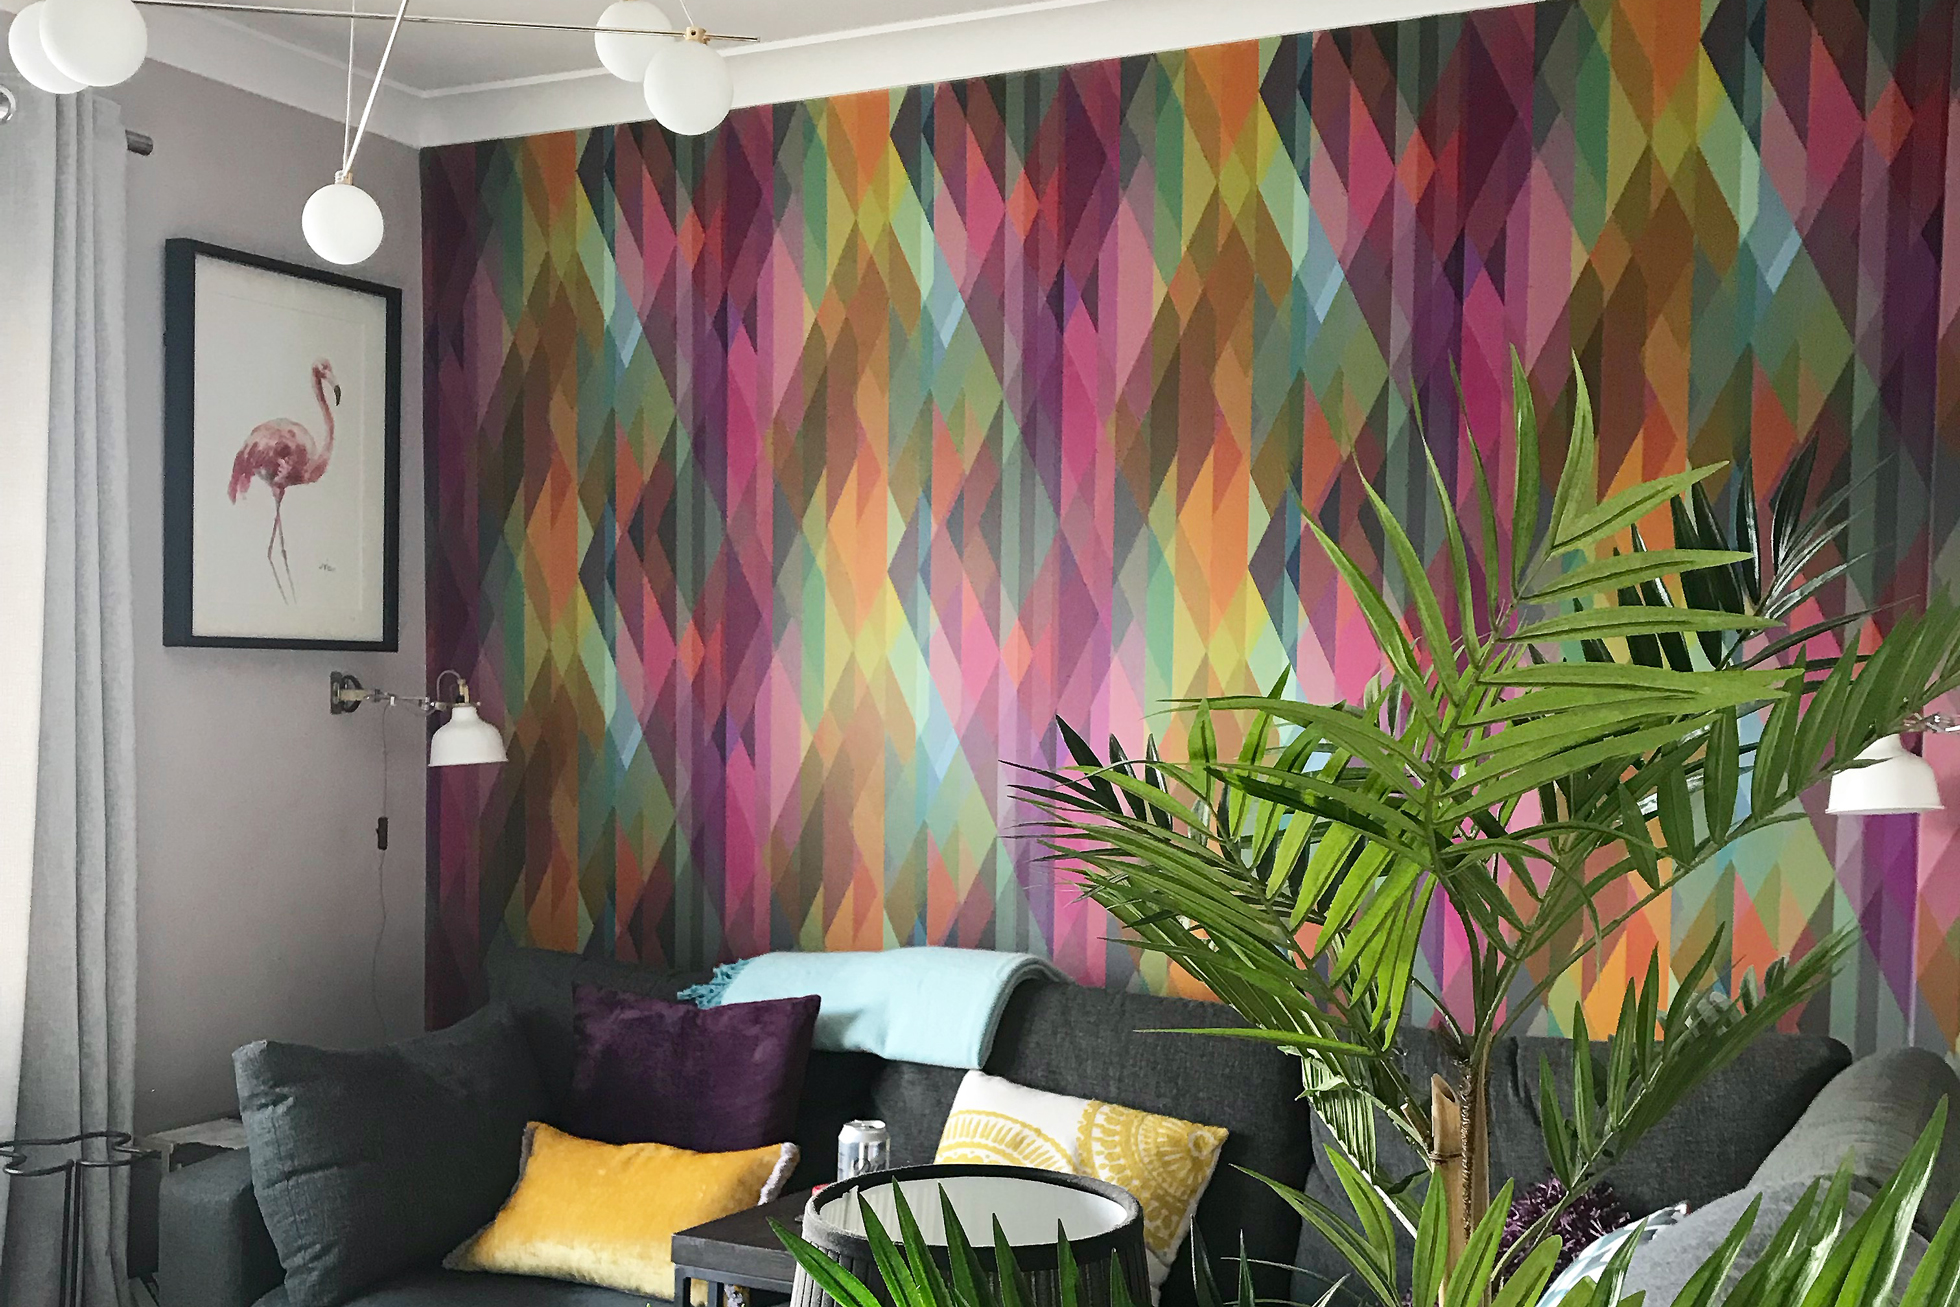 A wall in a living room covered in multi-colored wallpaper